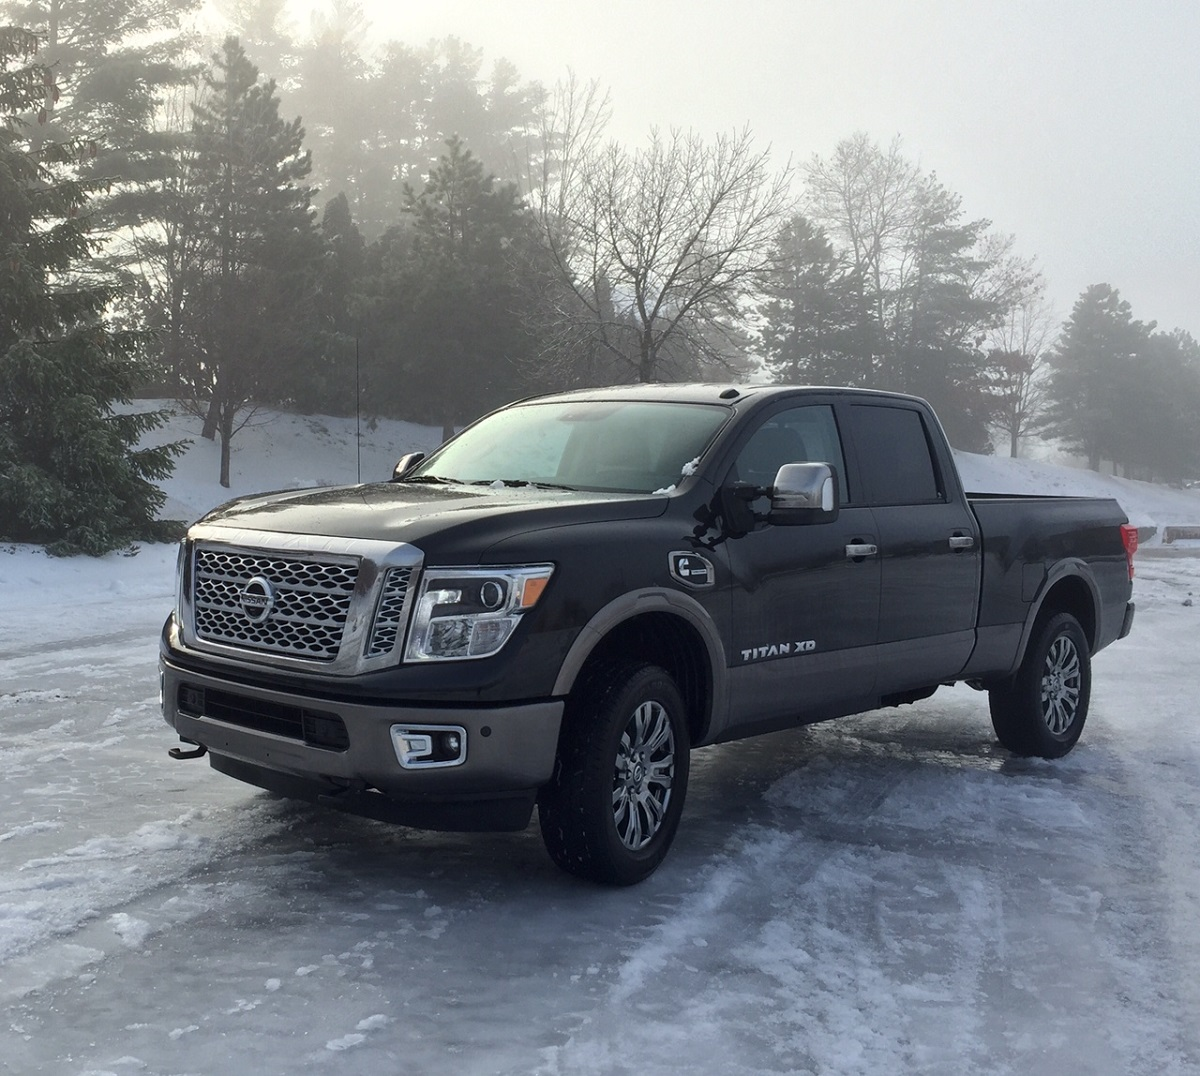 REVIEW: 2016 Nissan Titan XD